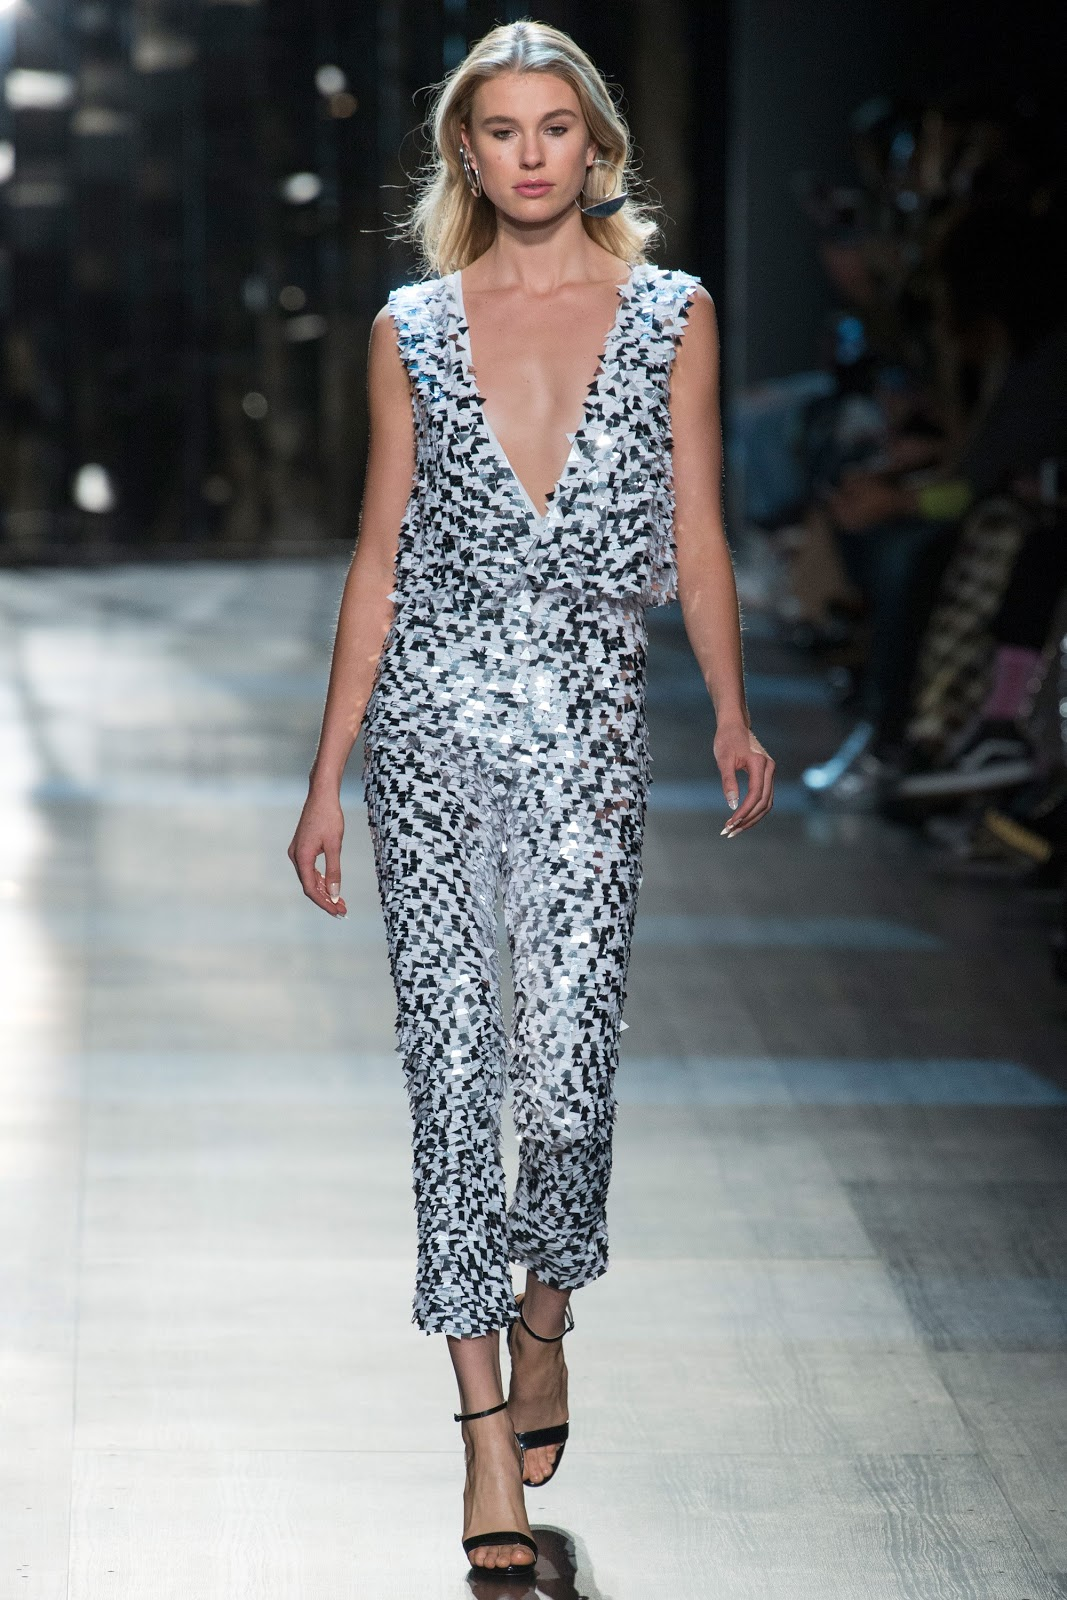 My Favorites From Cushnie et Ochs Fall/Winter Collection  www.toyastales.blogspot.